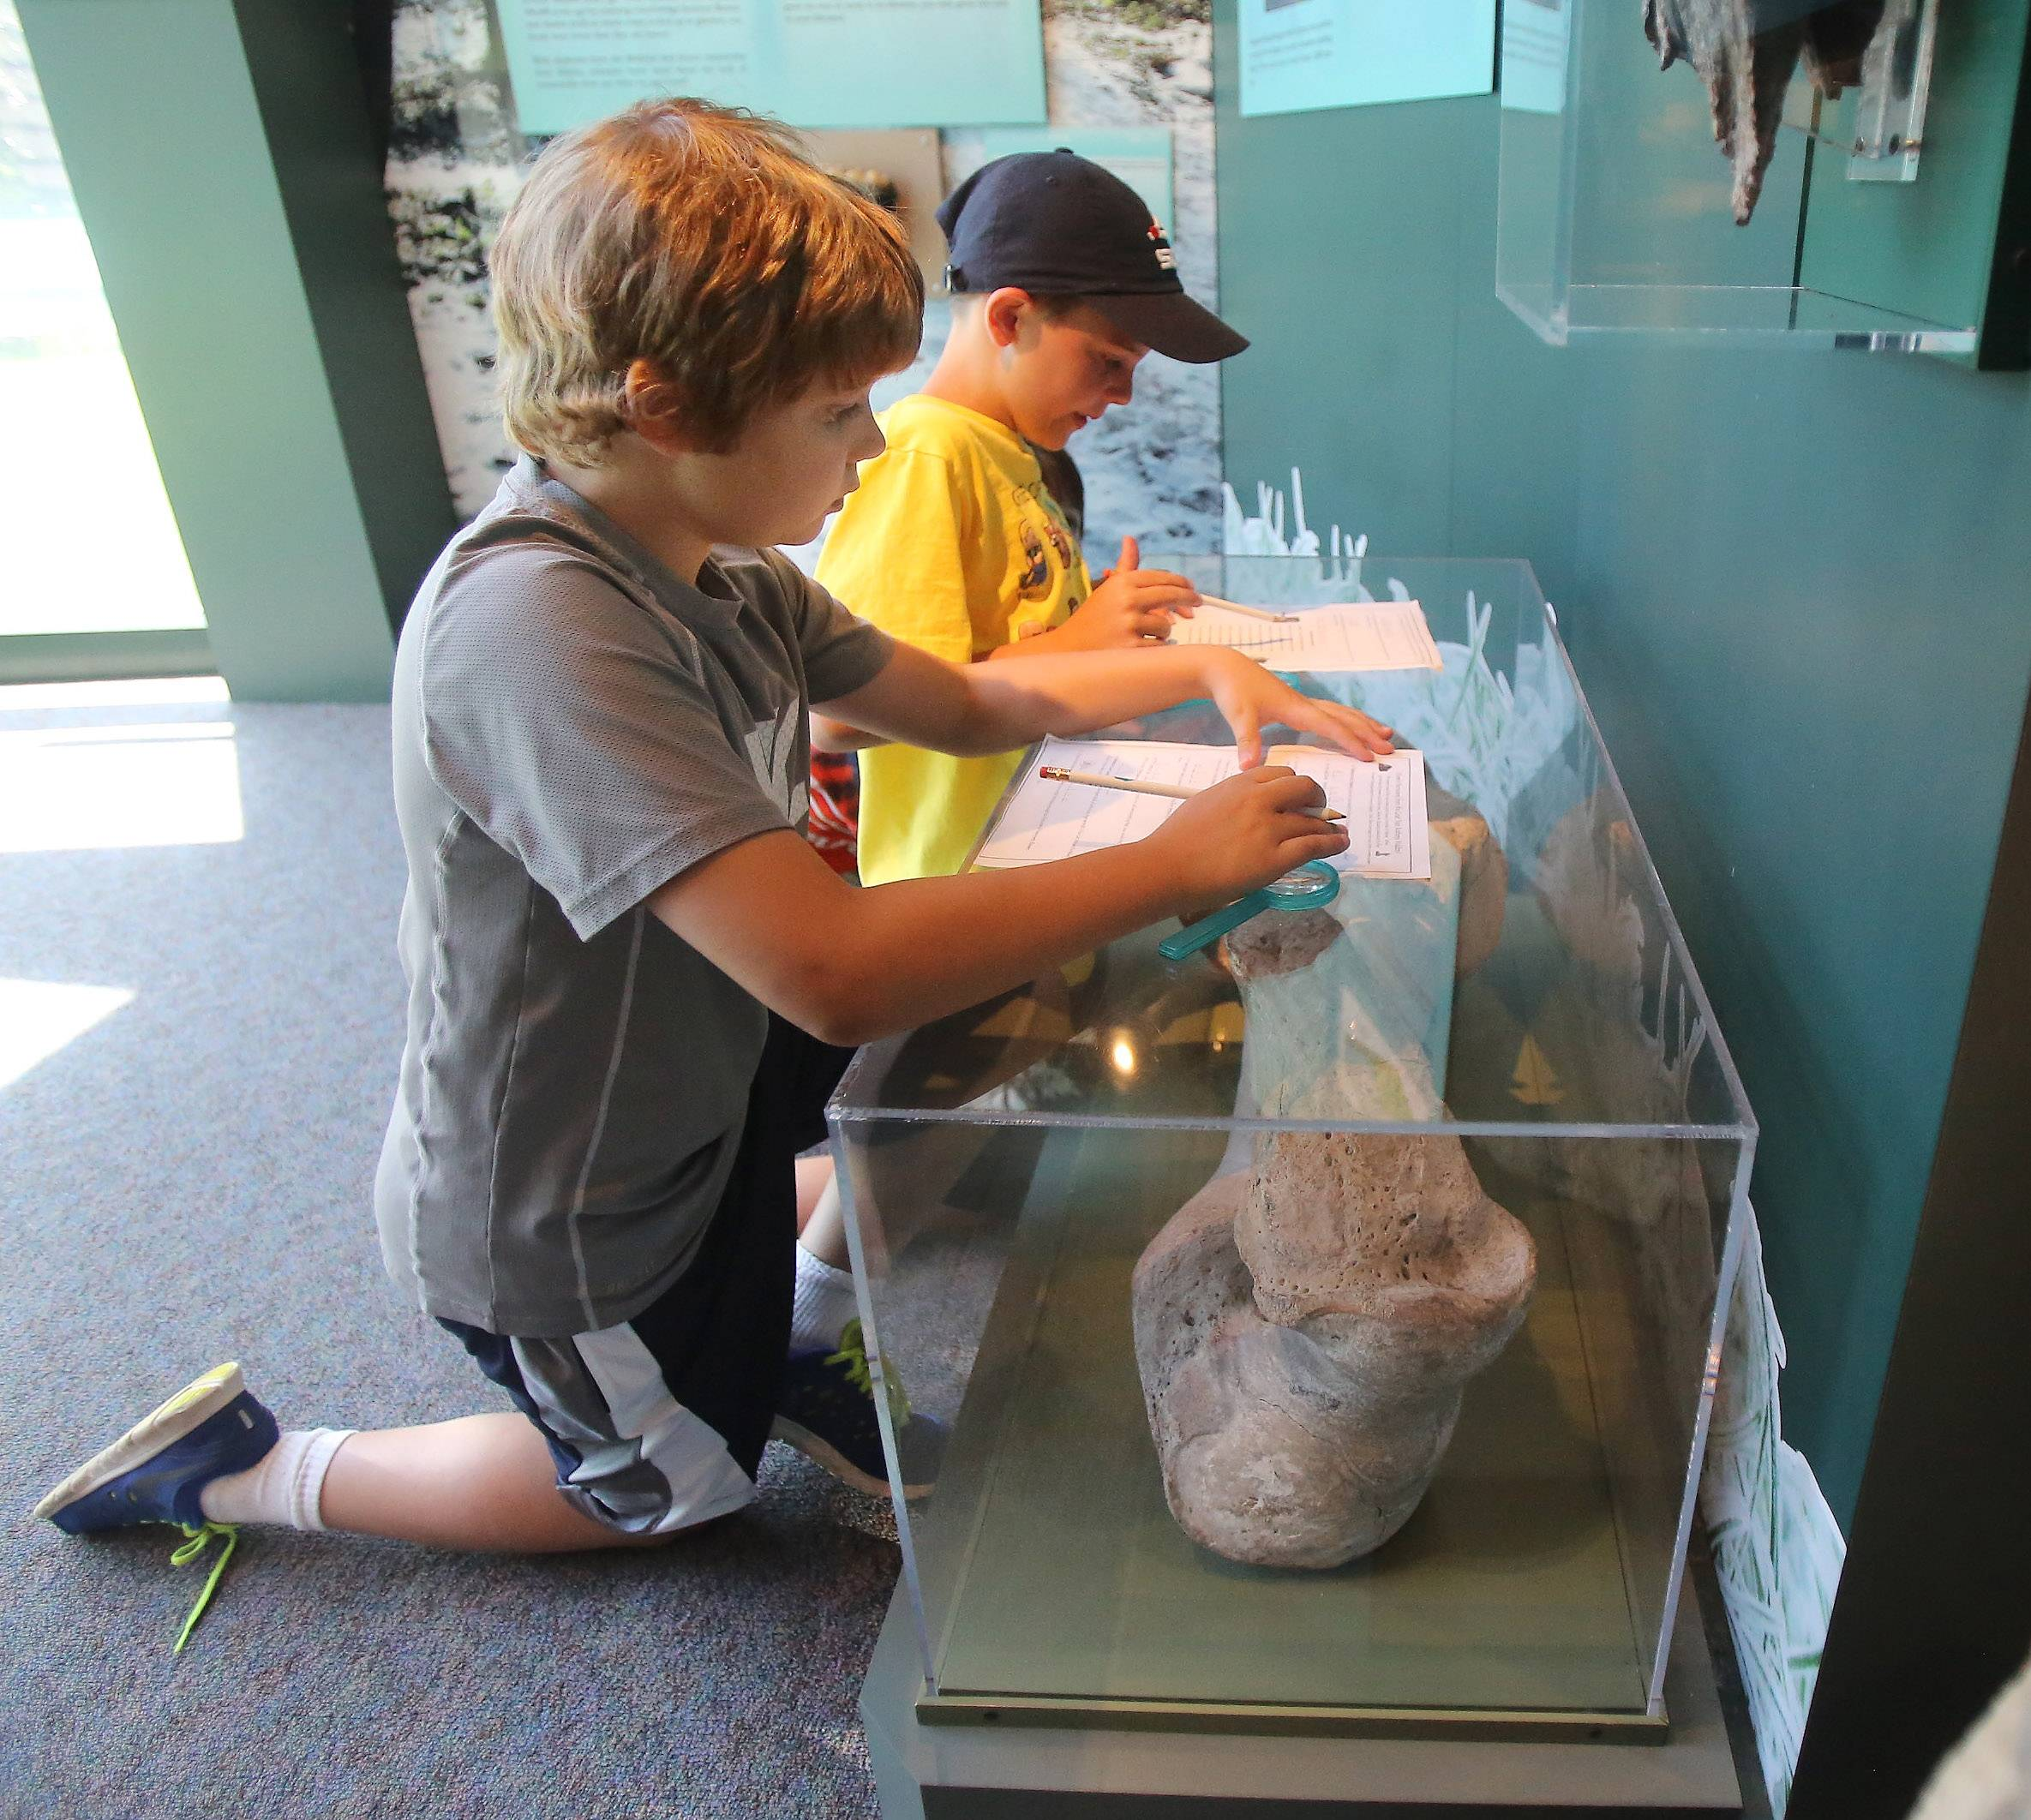 Erik Johnson, 9, of Vernon Hills, left, and Owen Smith, 10, of Mundelein look for clues during a scavenger hunt for missing money during the Lake County Forest Preserve District's History Detectives day camp Monday at the Lake County Discovery Museum near Wauconda. Their mission was to solve the biggest train robbery in county history, the 1924 Rondout Robbery.